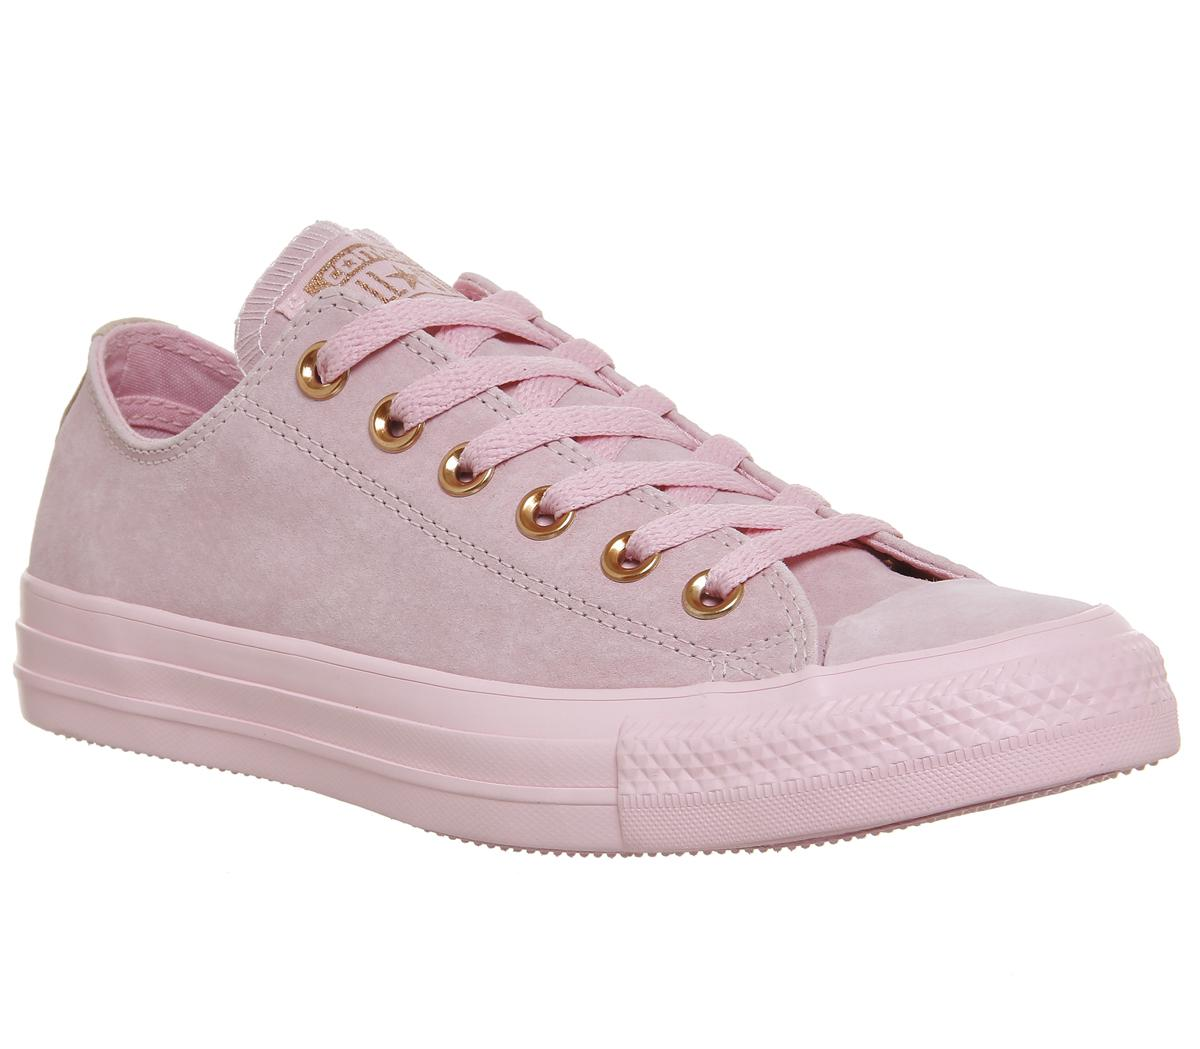 Converse All Star Low Leather Cherry